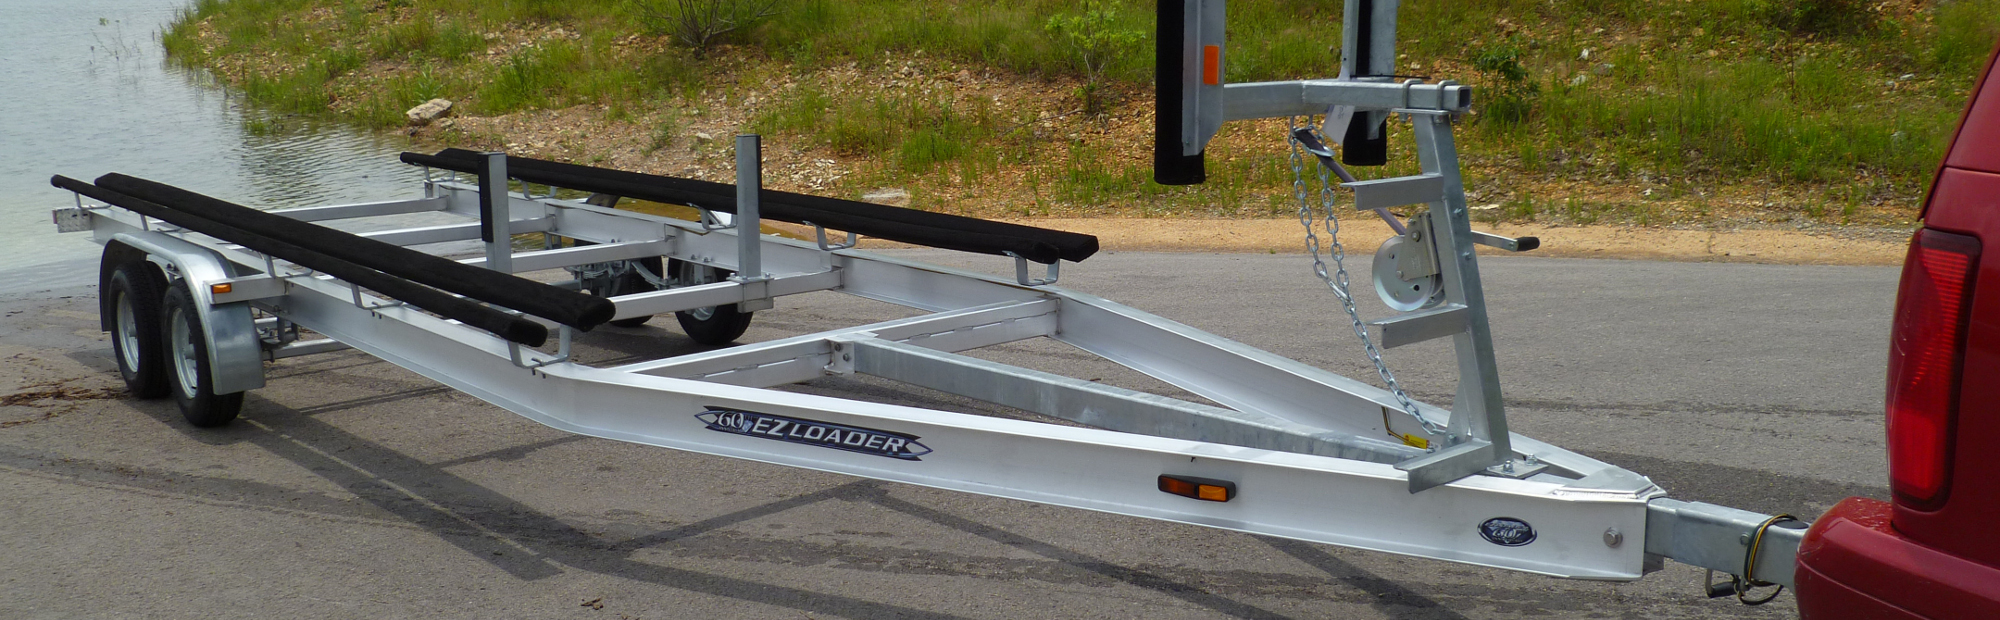 Aluminum Ez Loader Custom Adjustable Boat Trailers